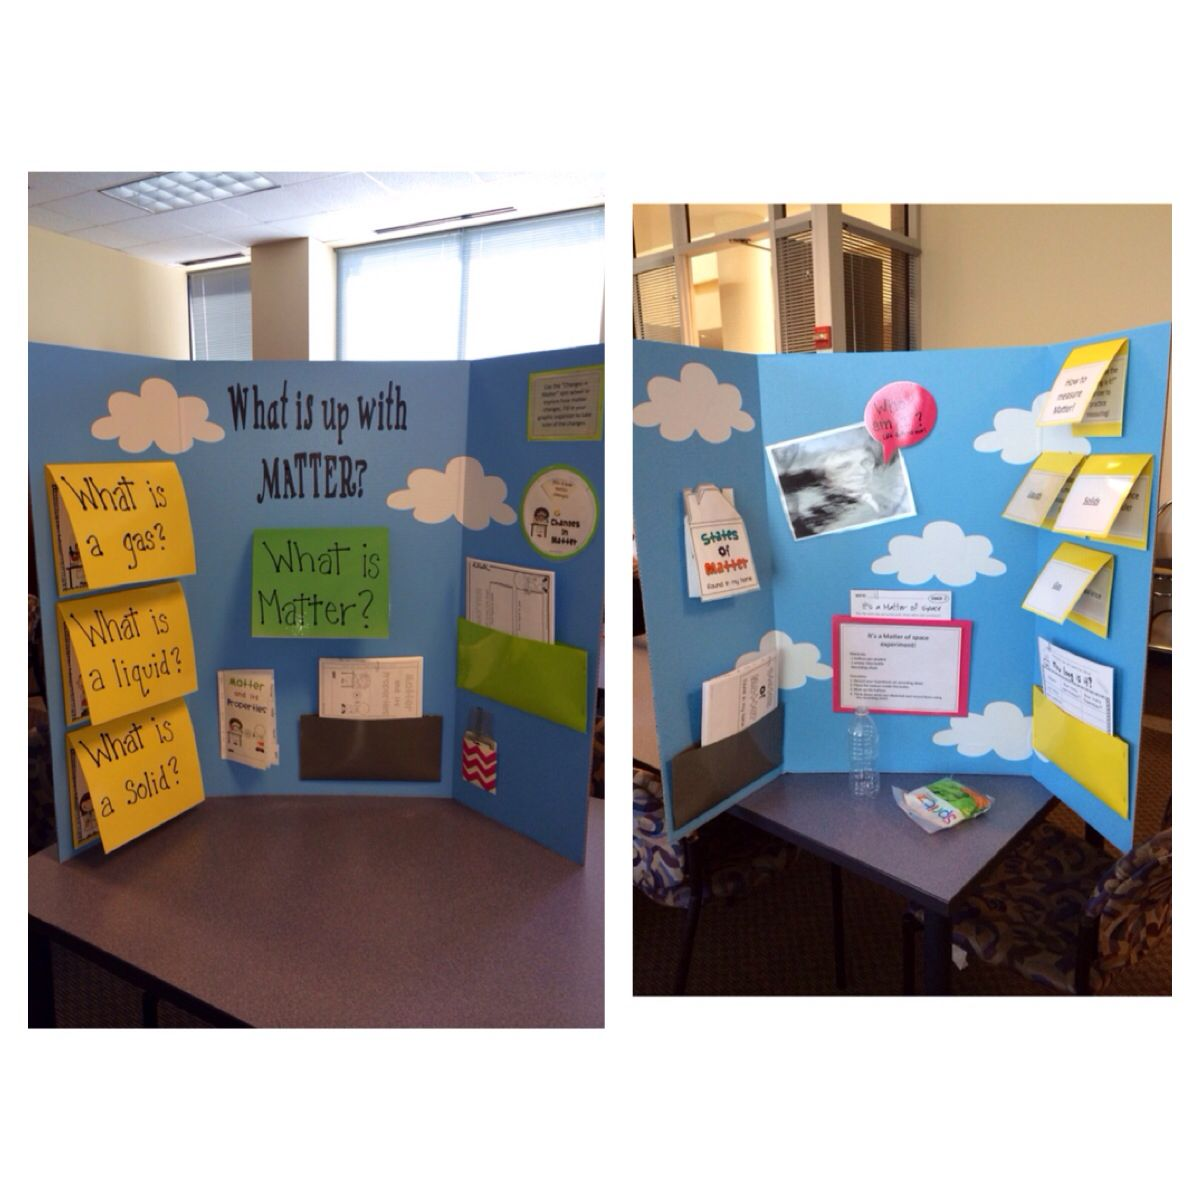 Ideas for poster board displays